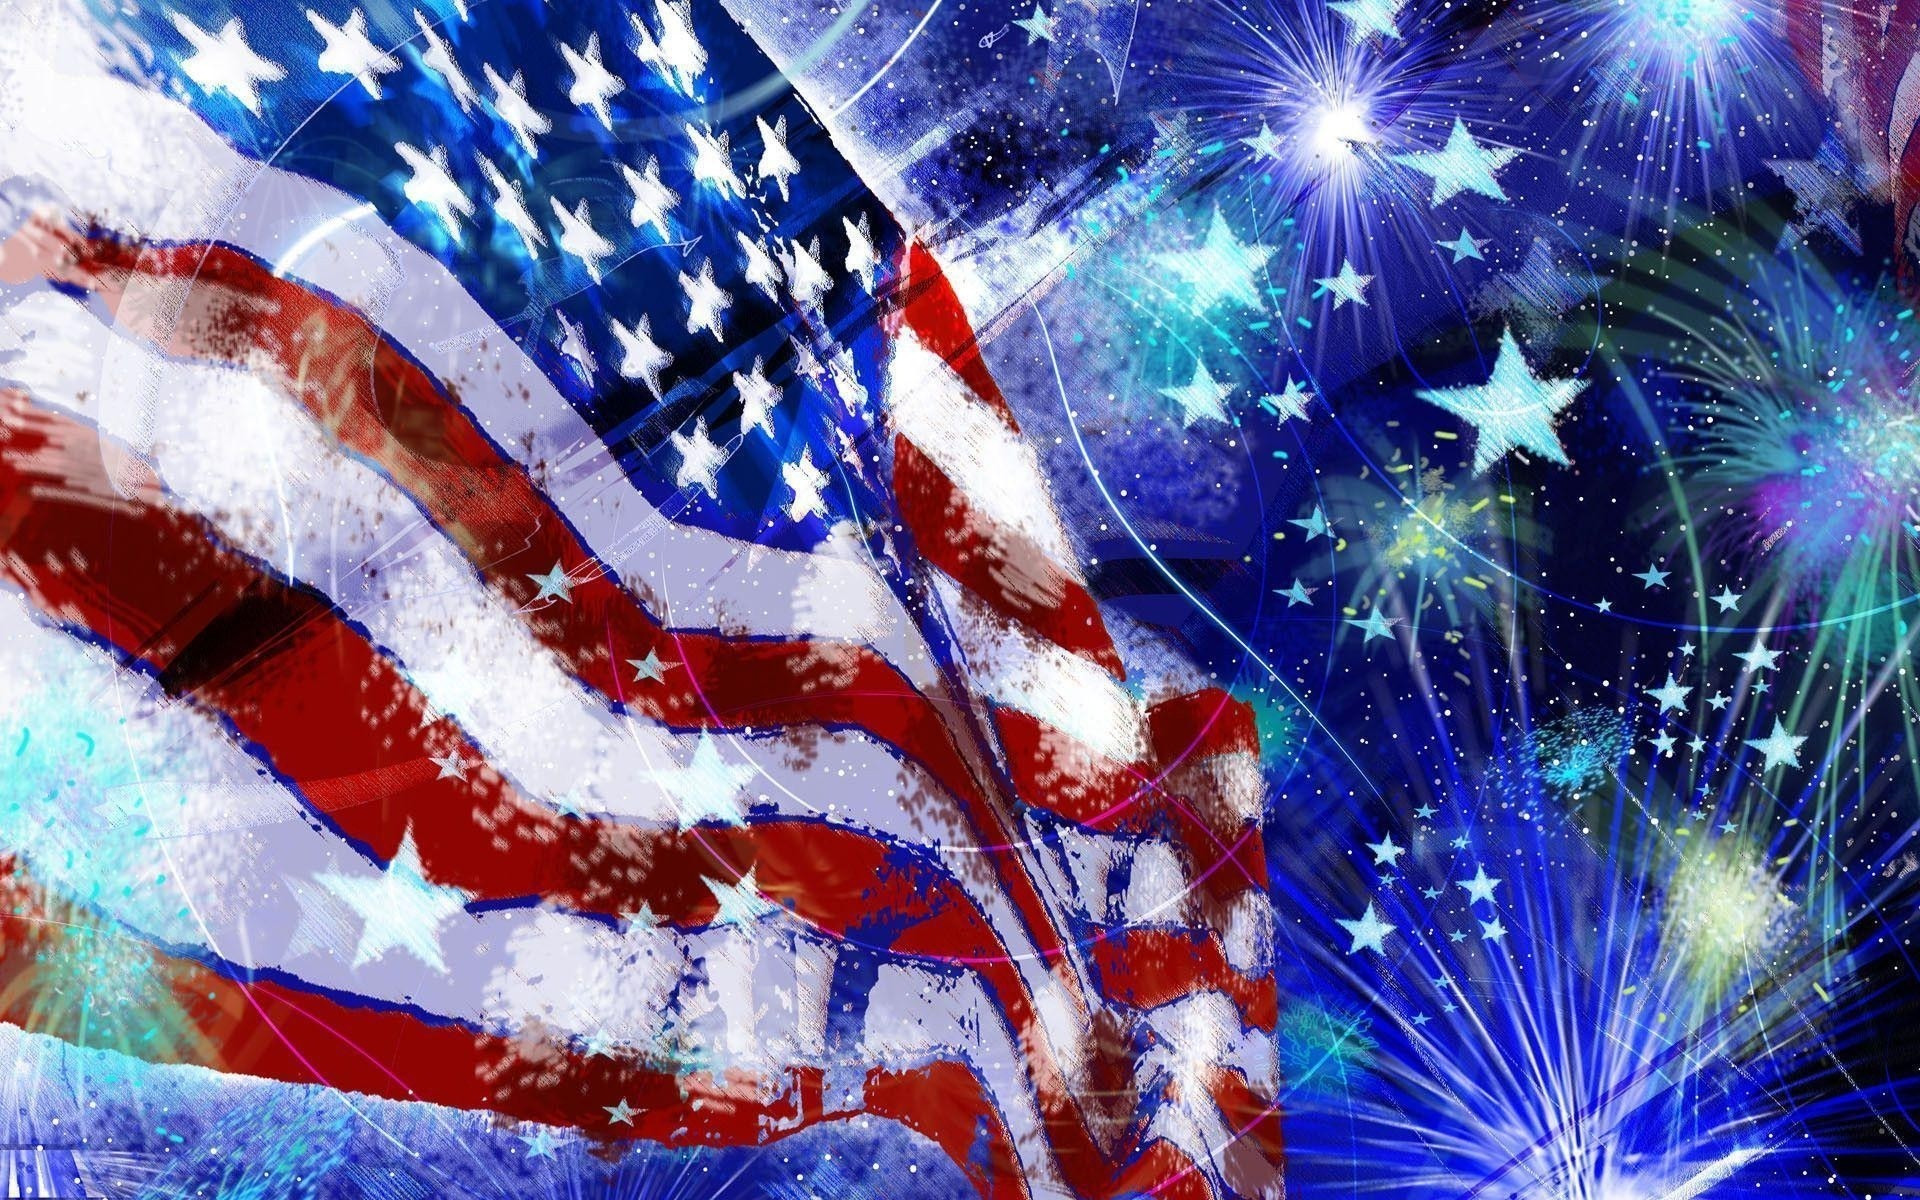 1920x1200 Title : 4th of july wallpapers – wallpaper cave. Dimension : 1920 x 1200.  File Type : JPG/JPEG